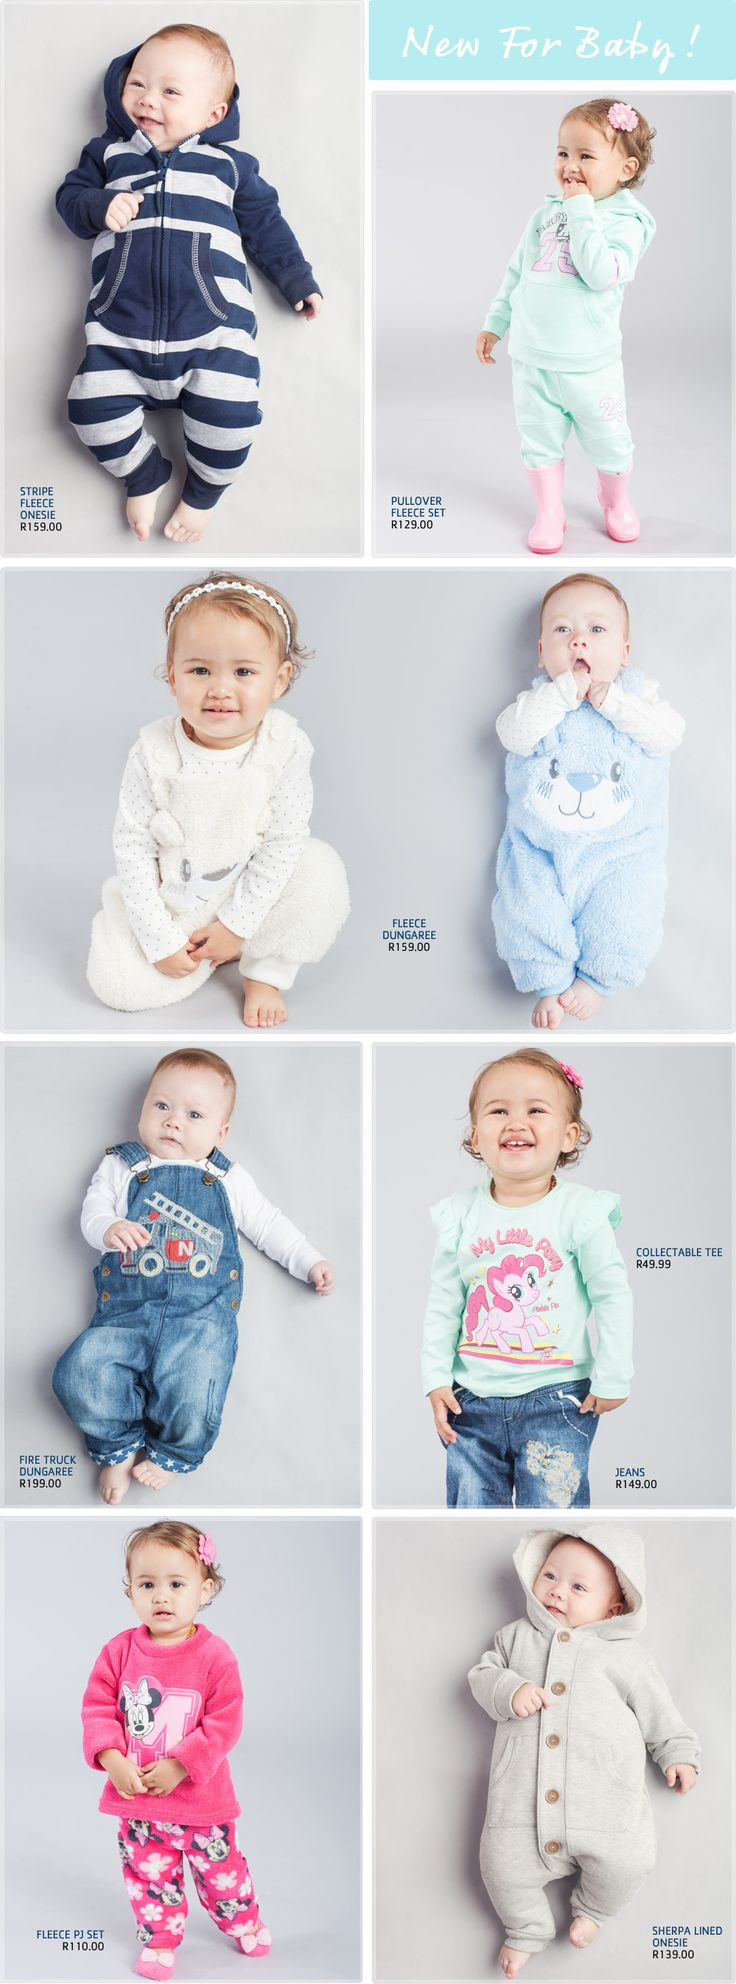 Clothing Baby - Pick n Pay A wide selection and collection of quality baby clothes and newborn clothing. From fleece wear to snowsuit. See how these winter warmers meet little prices